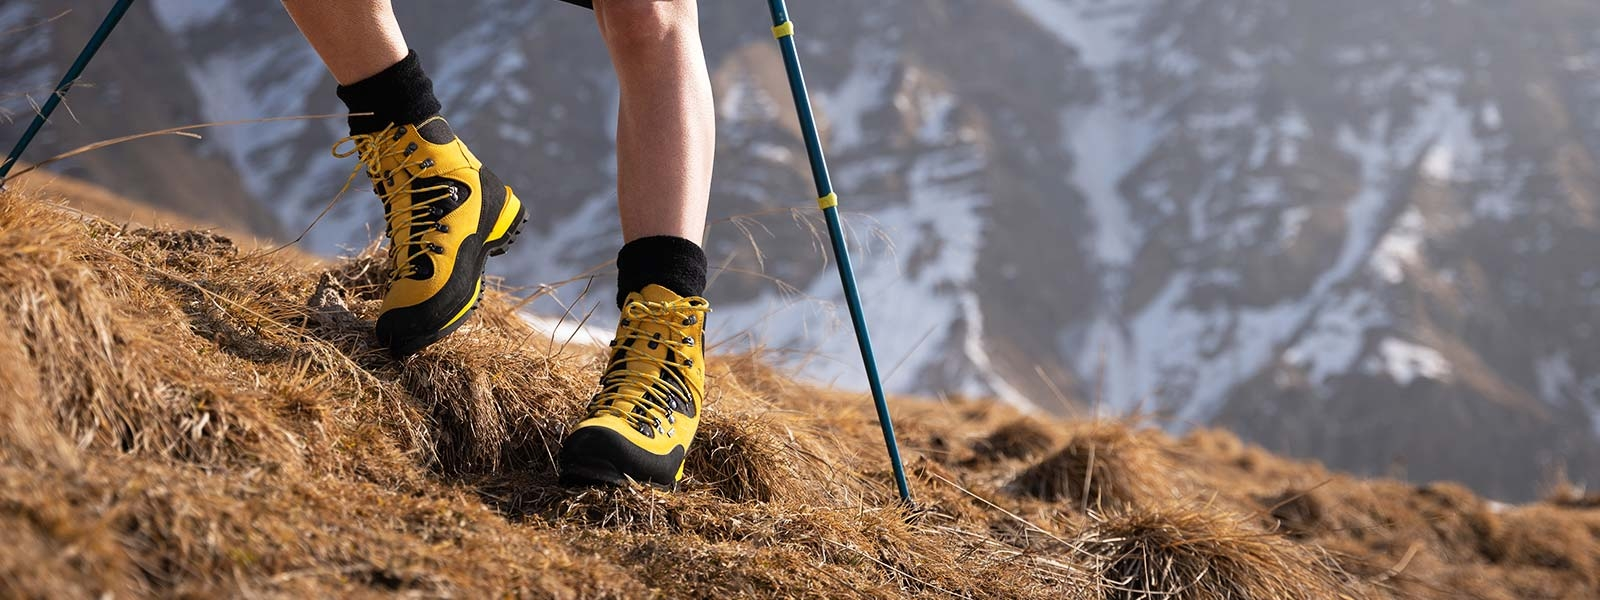 Garsport Mountaineer - crampon mountaineering boots with vibram sole